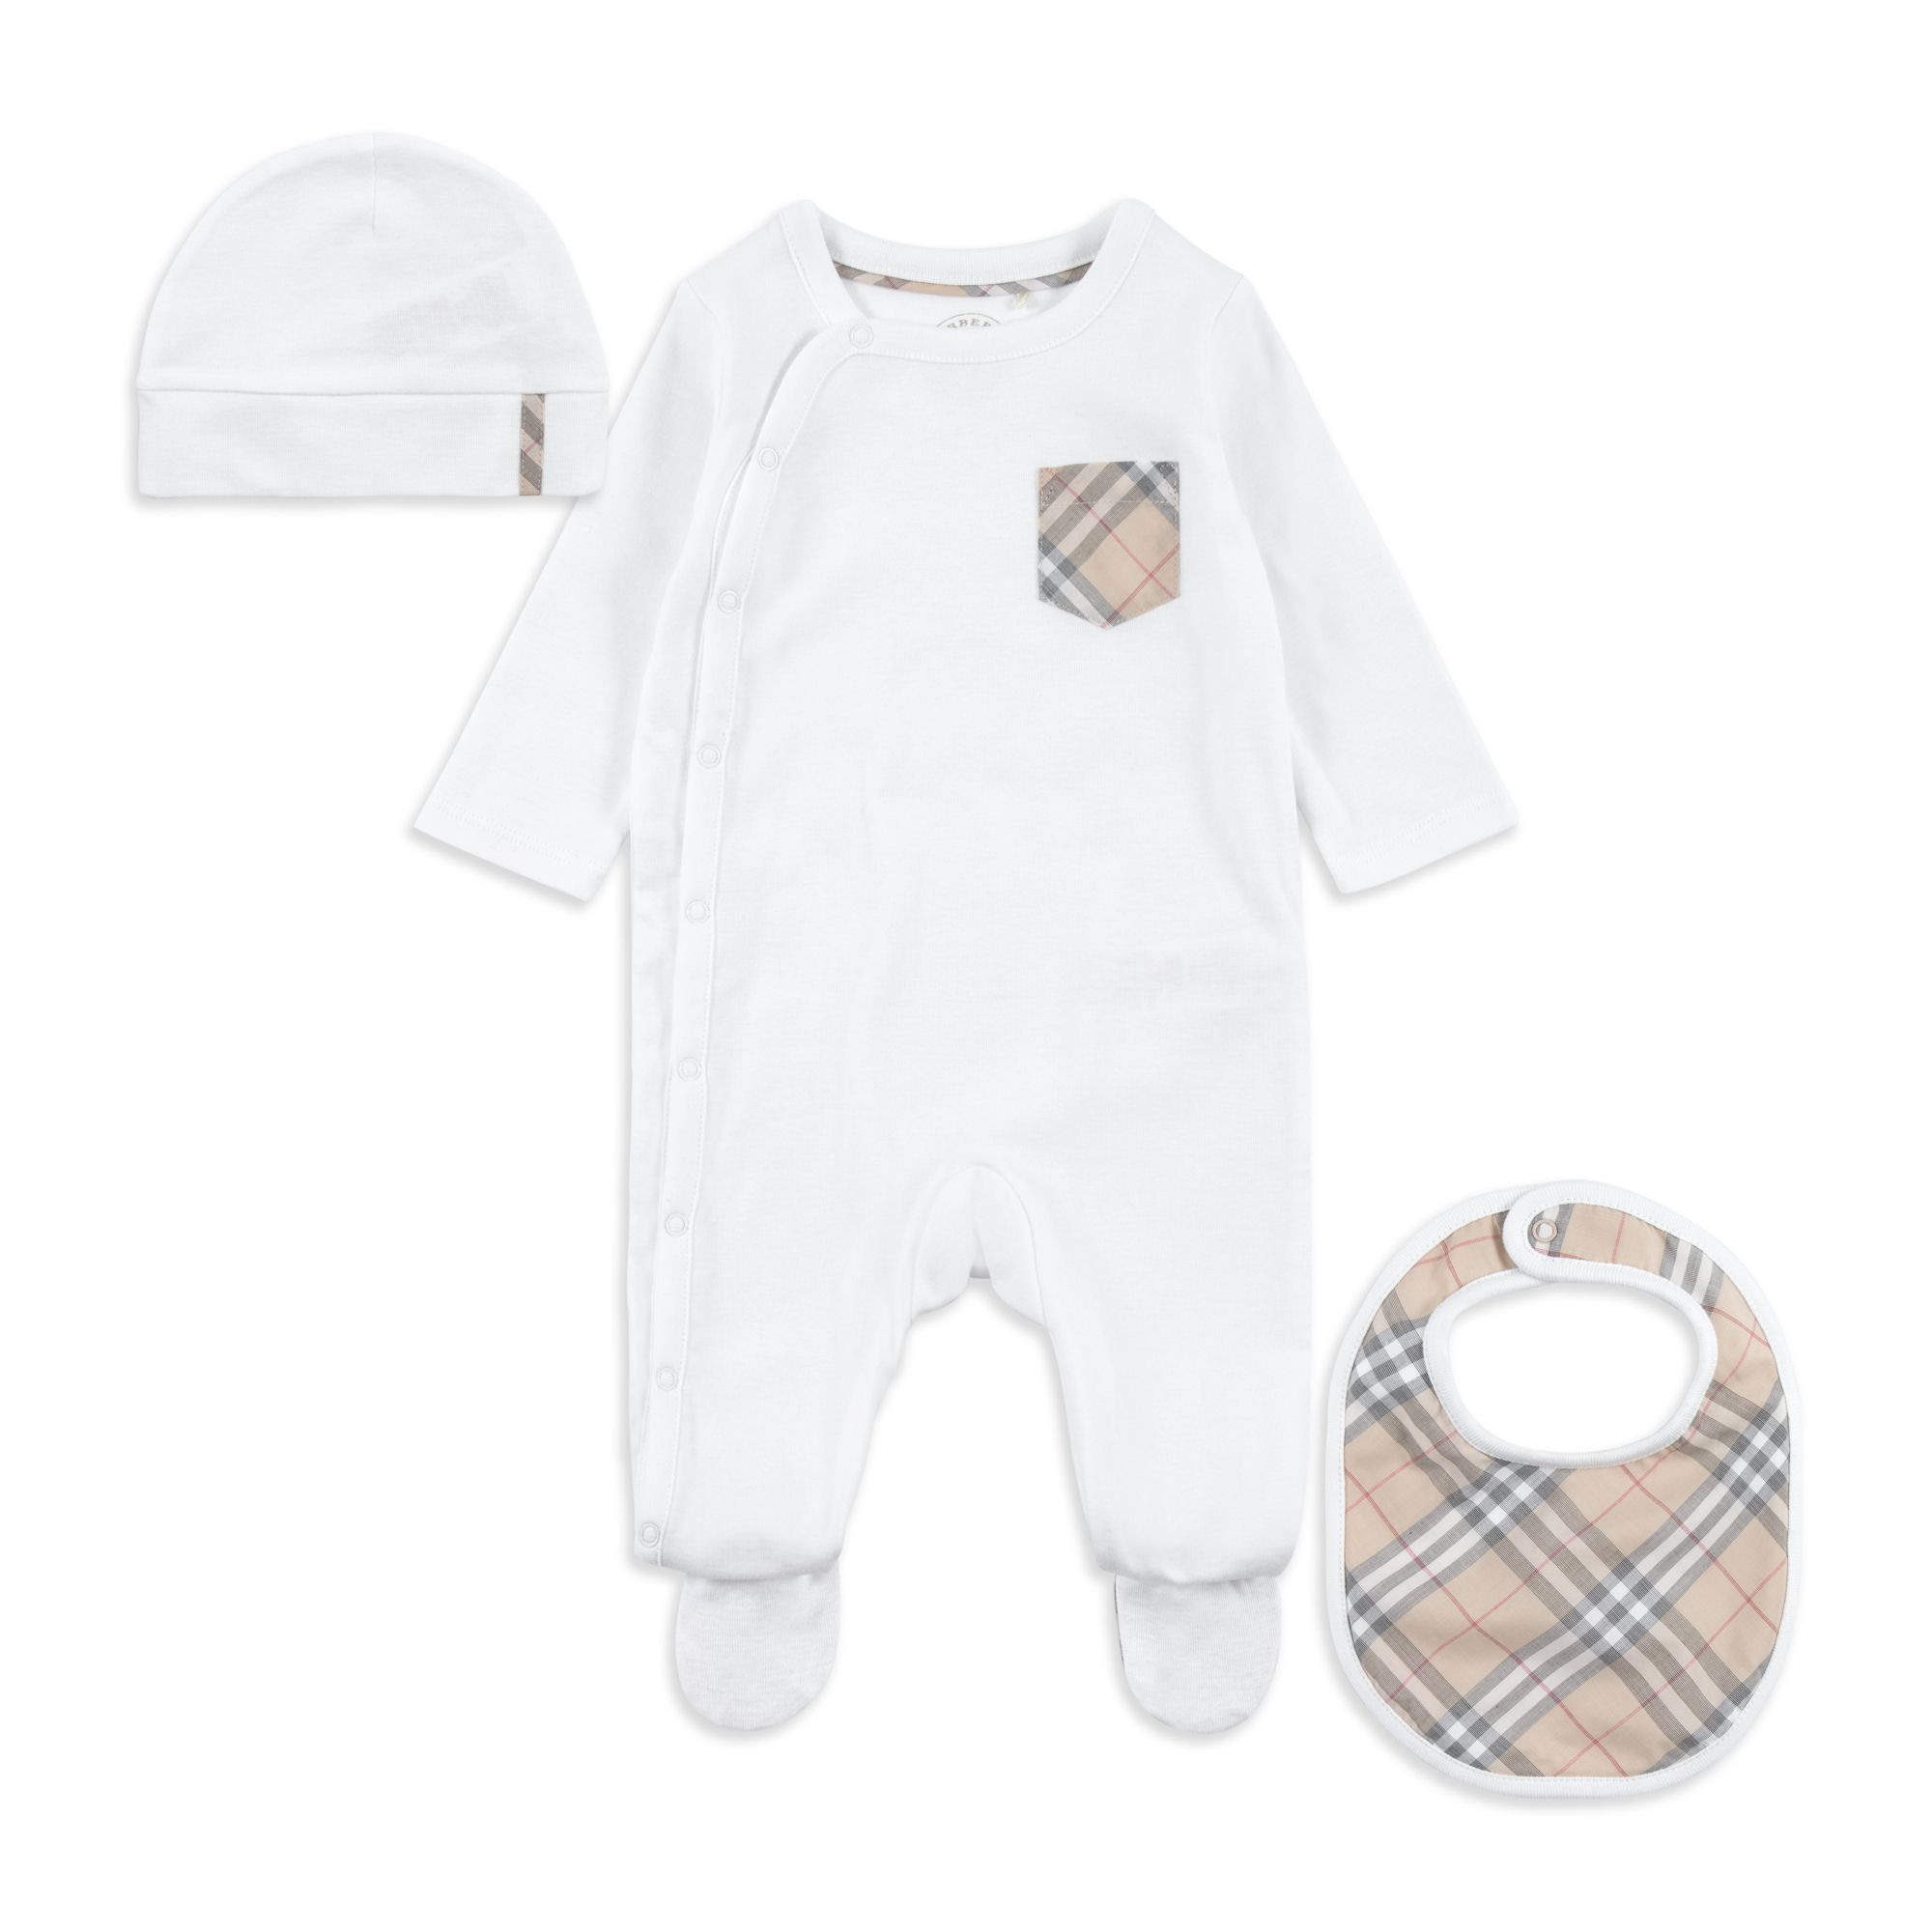 Burberry - Baby  Jaydin  Babygrow Set - White - Baby outfit gift set 46c066344675